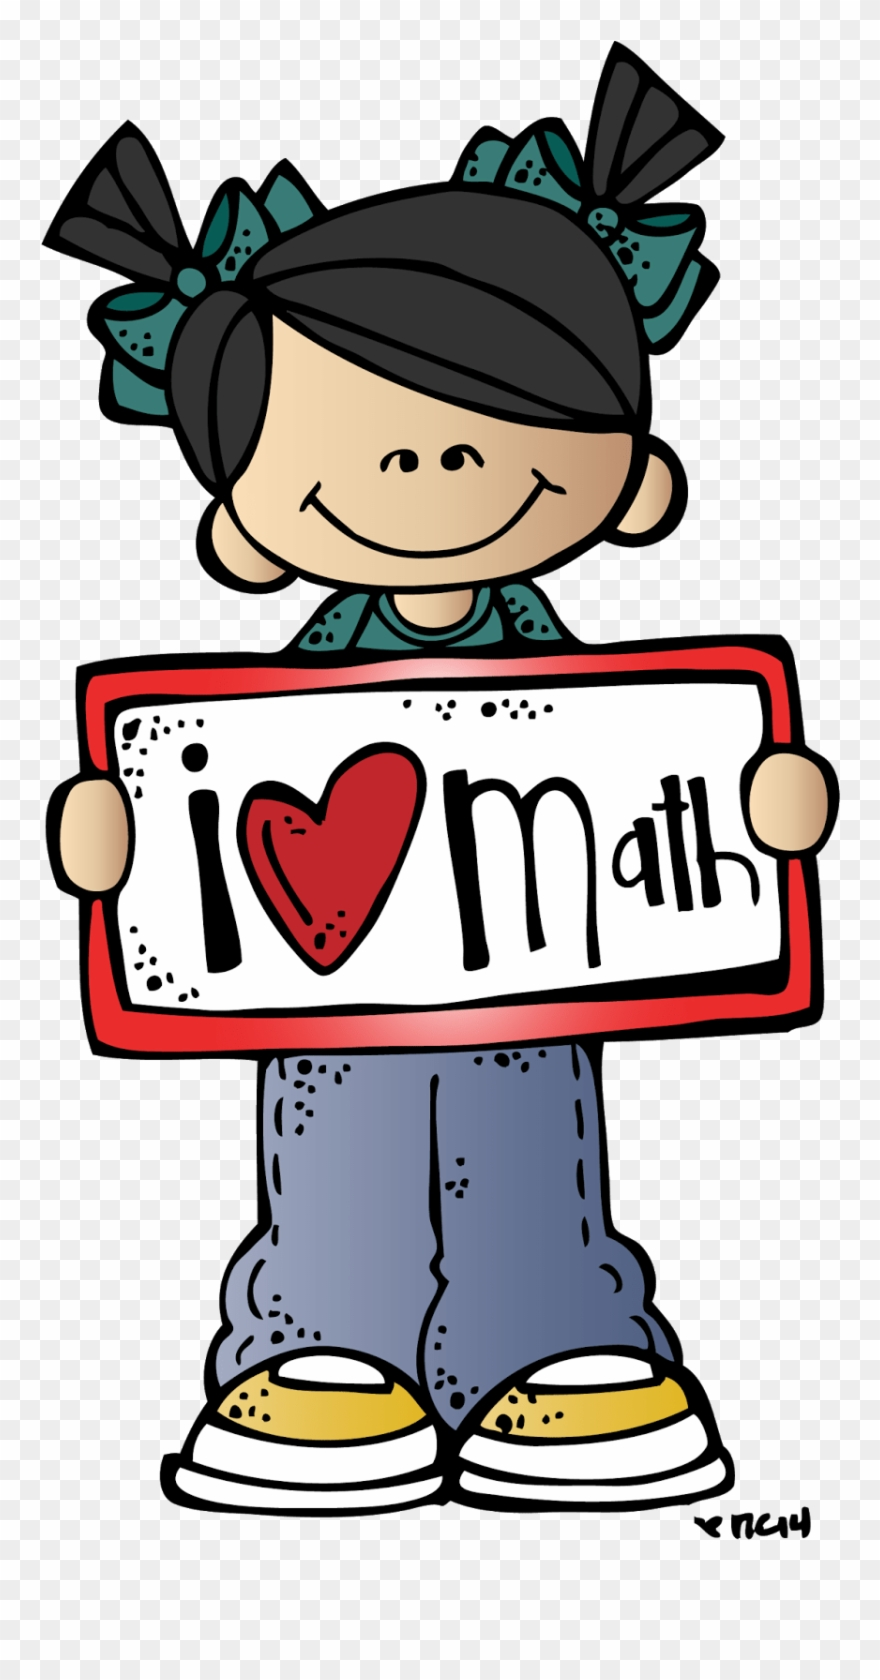 Math Clip Art For Middle School Free Clipart Images.